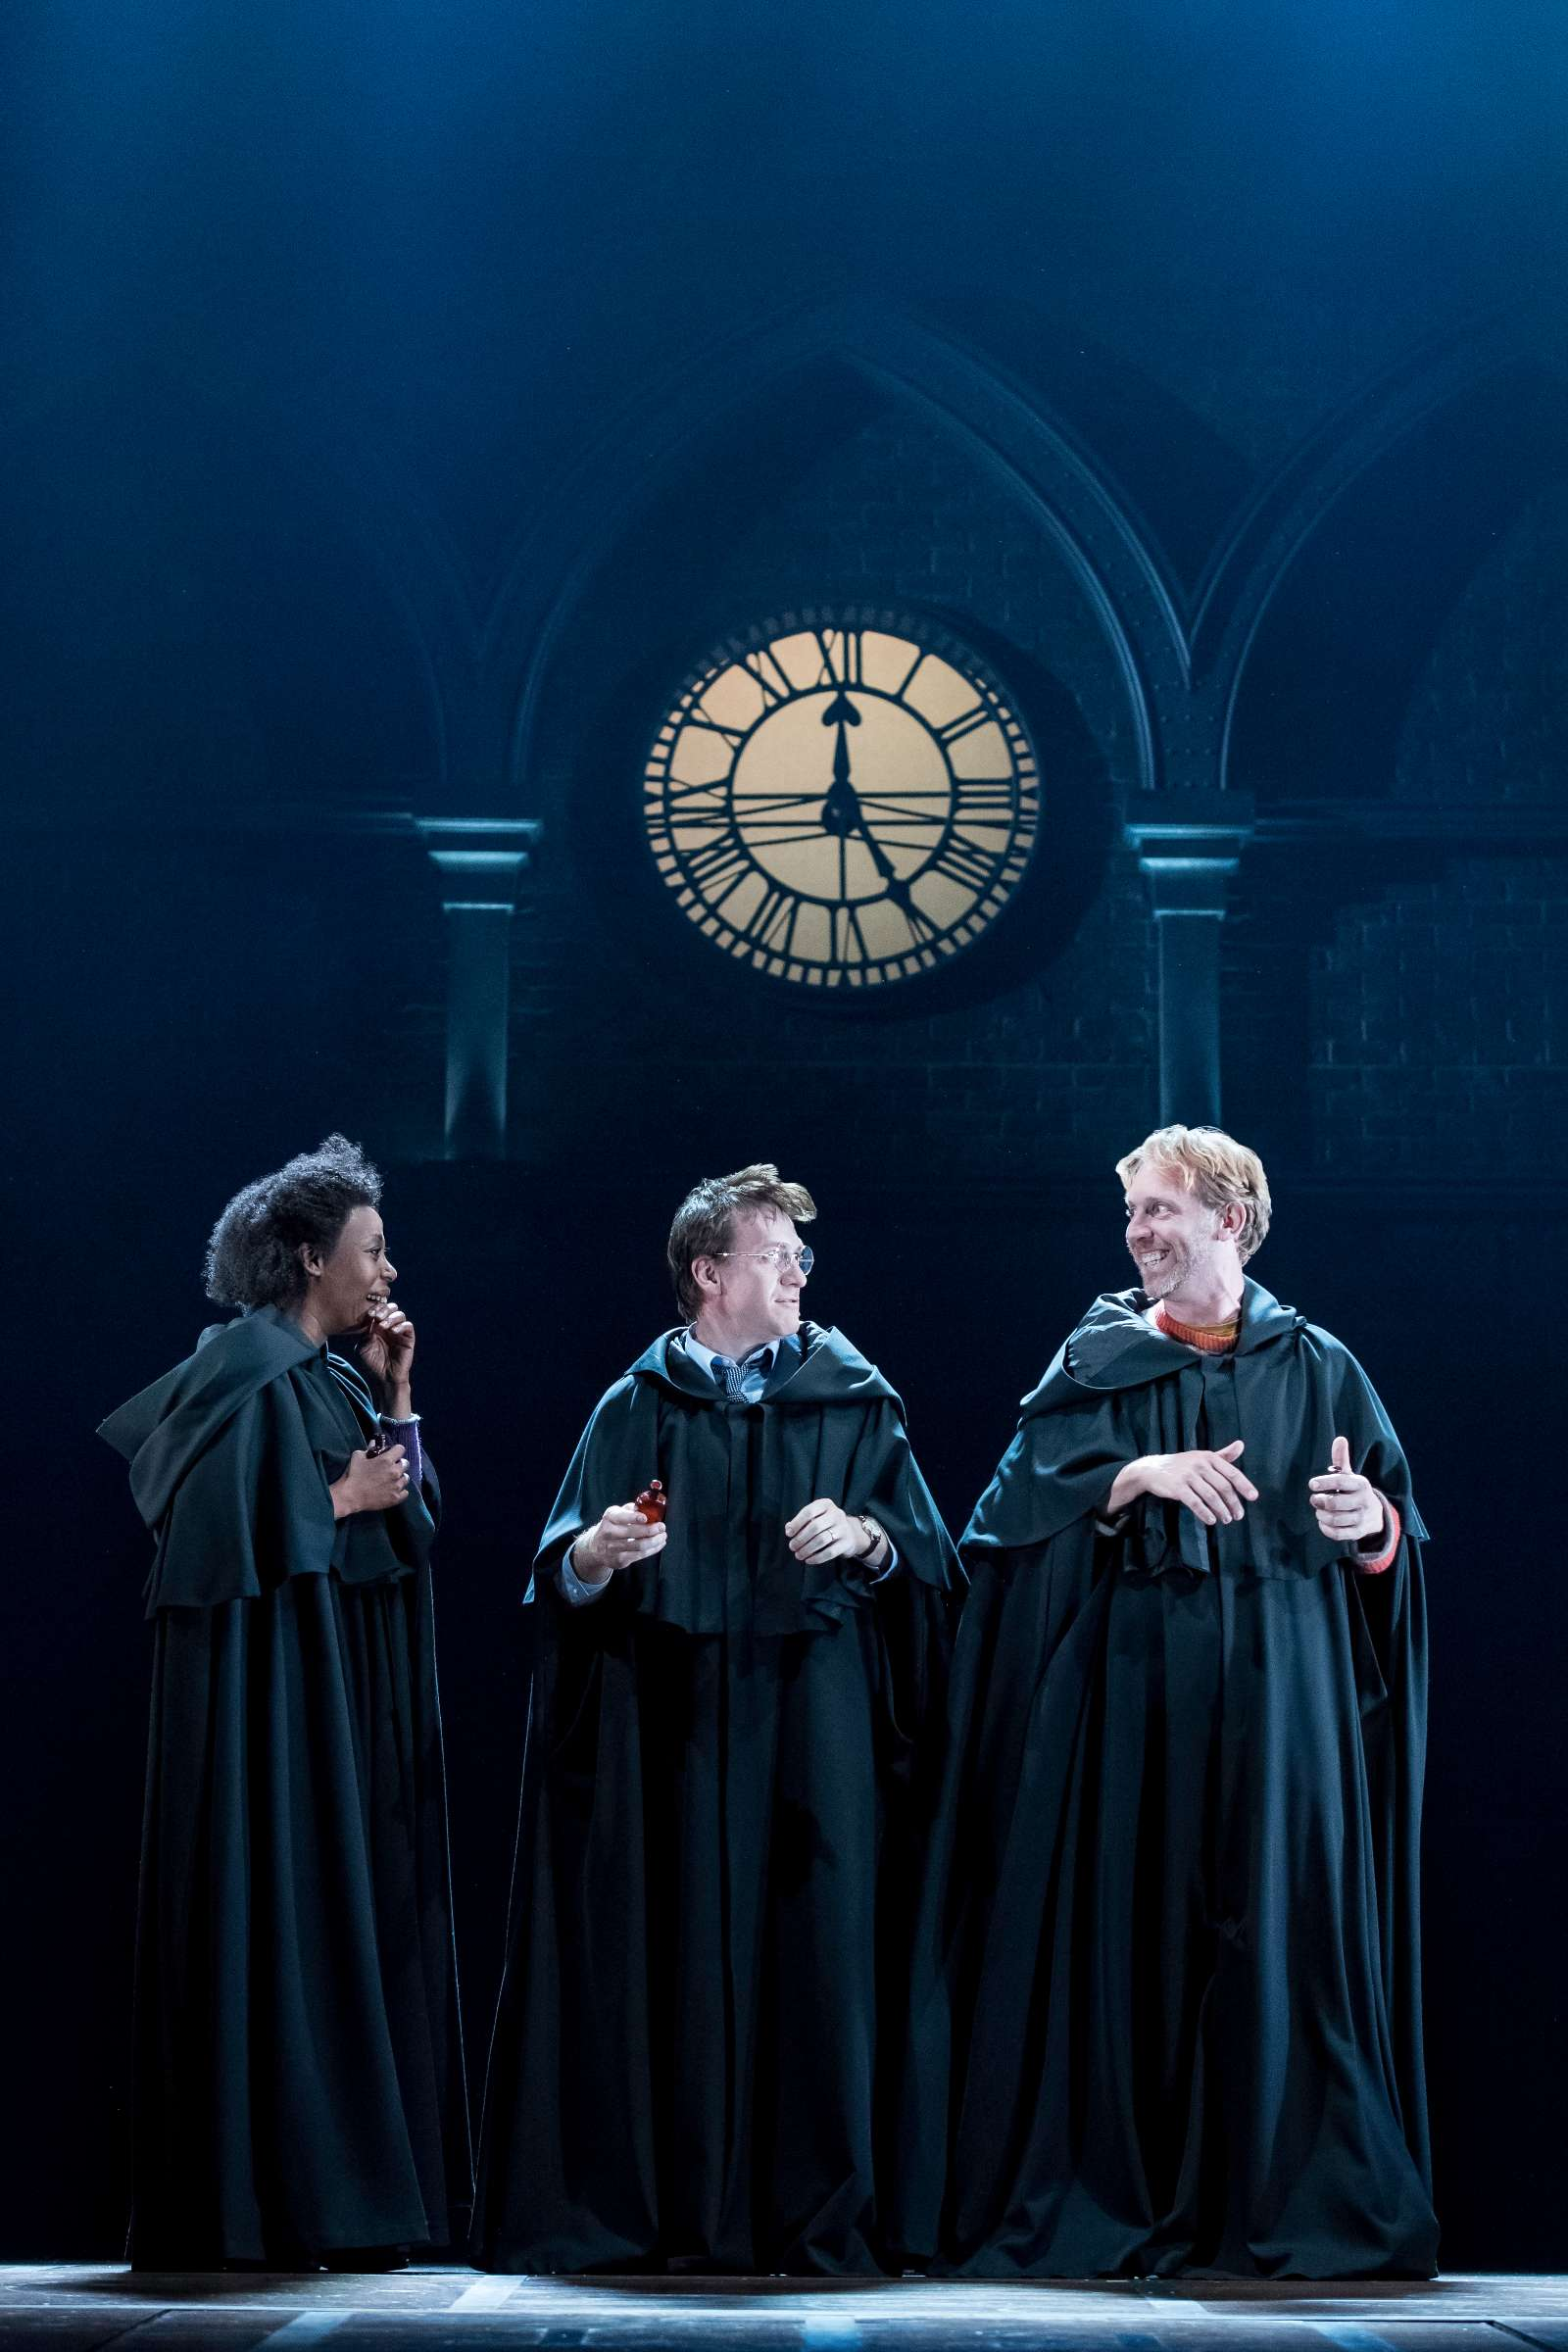 Harry Potter and the Cursed Child (Parts I and II